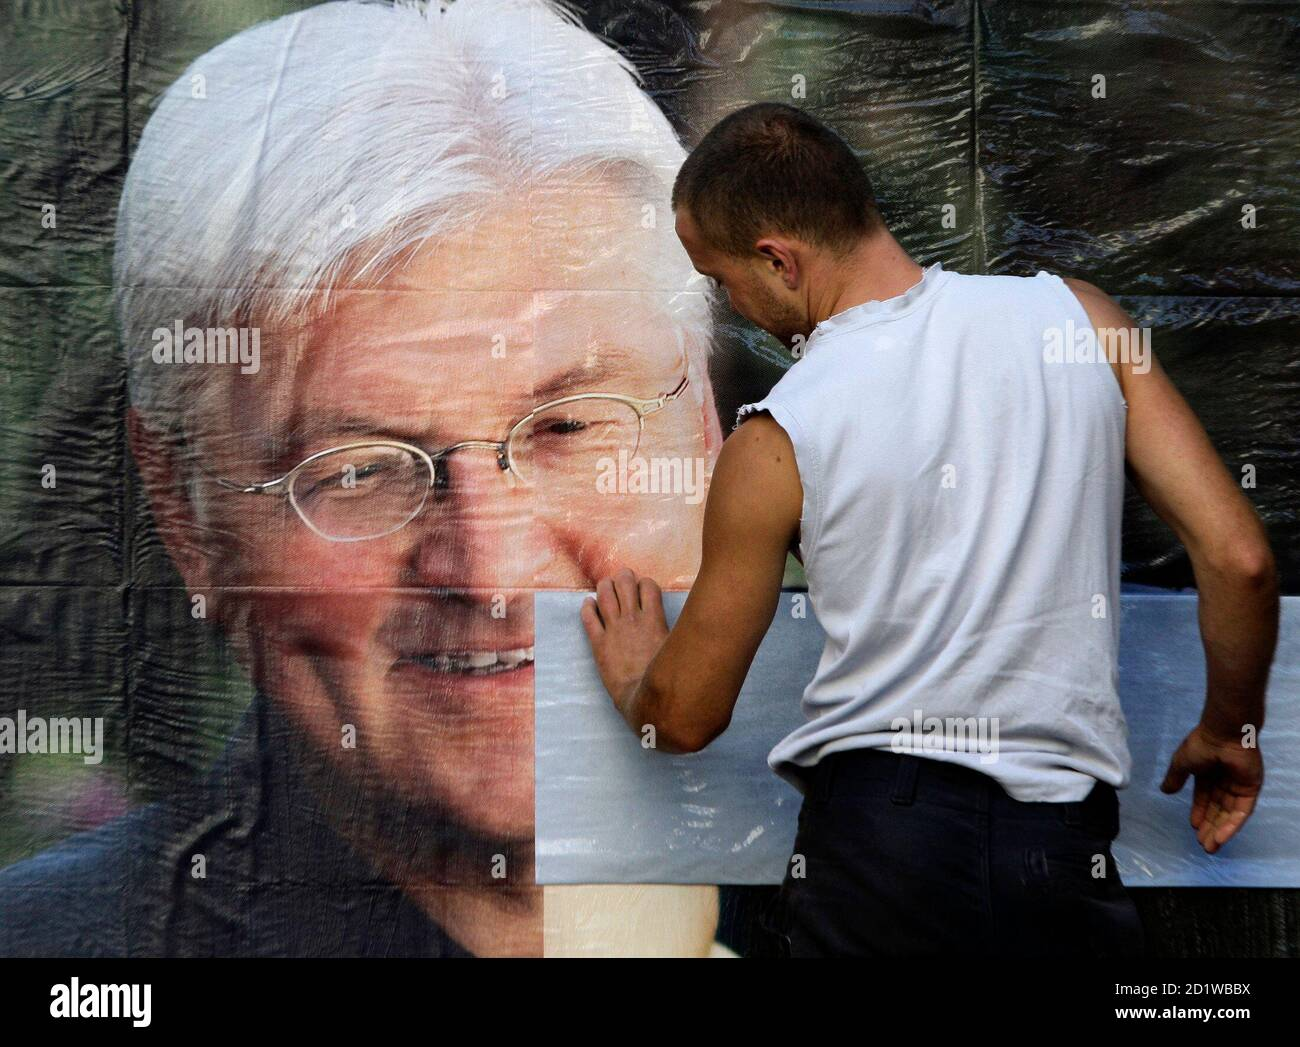 Workers paste up election posters showing German Foreign Minister and candidate for chancellor of Germany's Social Democratic Party (SPD) Frank-Walter Steinmeier in Berlin, August 31, 2009. Senior members of Chancellor Angela Merkel's conservatives warned on Monday that heavy losses in weekend regional votes were a wake up call one month before the German election and called for a more aggressive campaign.  REUTERS/Tobias Schwarz     (GERMANY POLITICS ELECTIONS IMAGES OF THE DAY) Stock Photo